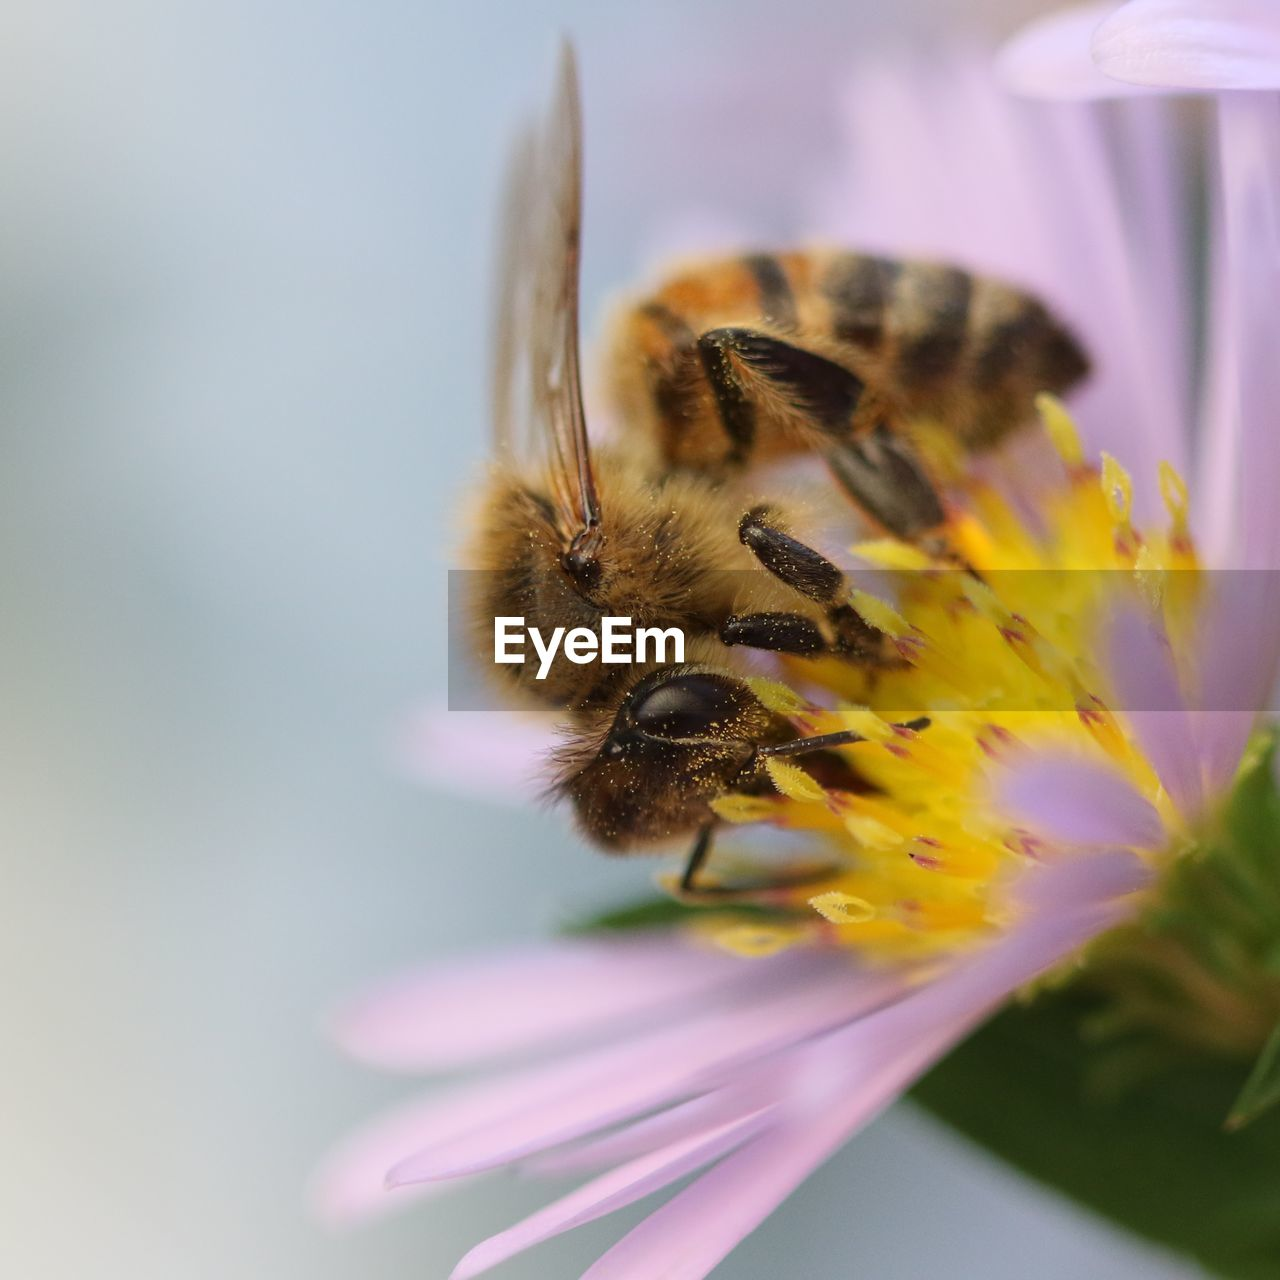 flower, flowering plant, bee, animal themes, fragility, invertebrate, insect, vulnerability, animal, beauty in nature, flower head, one animal, animals in the wild, petal, plant, animal wildlife, freshness, close-up, pollination, growth, no people, pollen, honey bee, bumblebee, purple